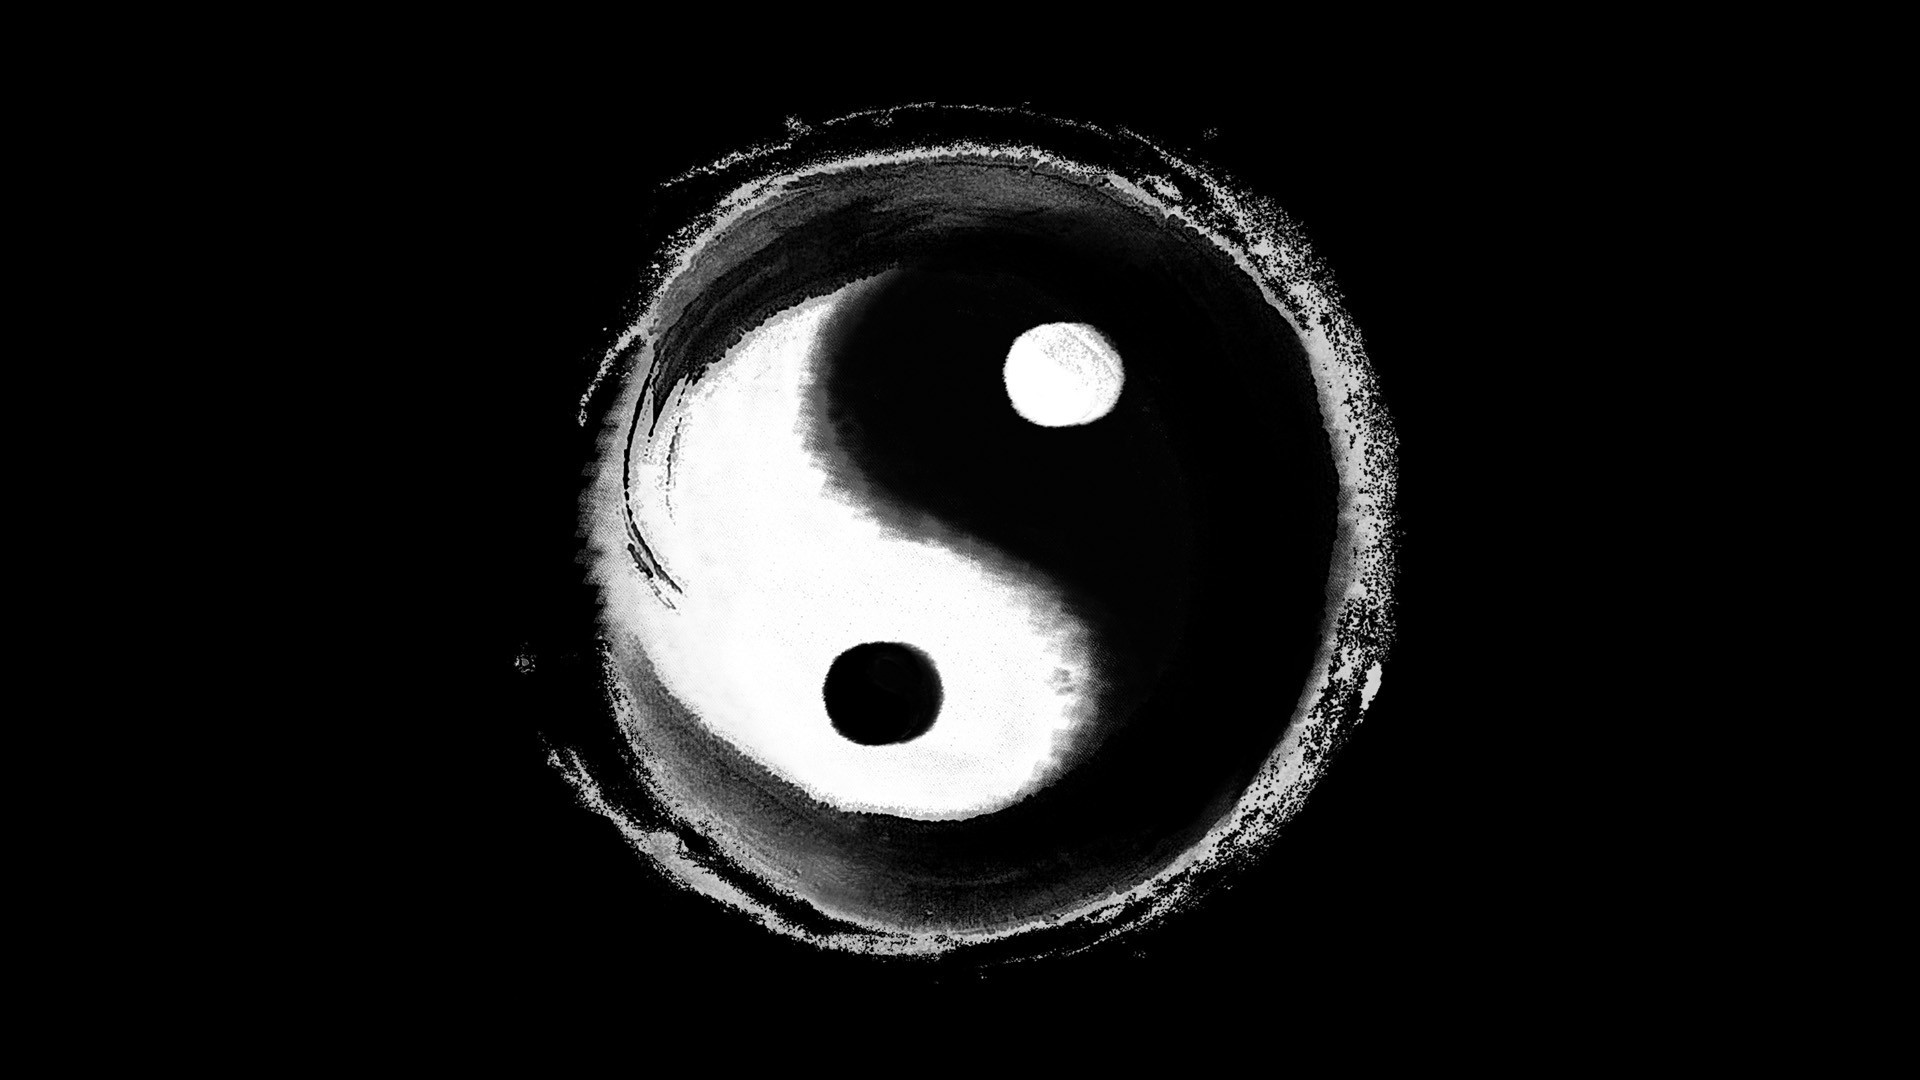 Yin Yang Wallpaper theme